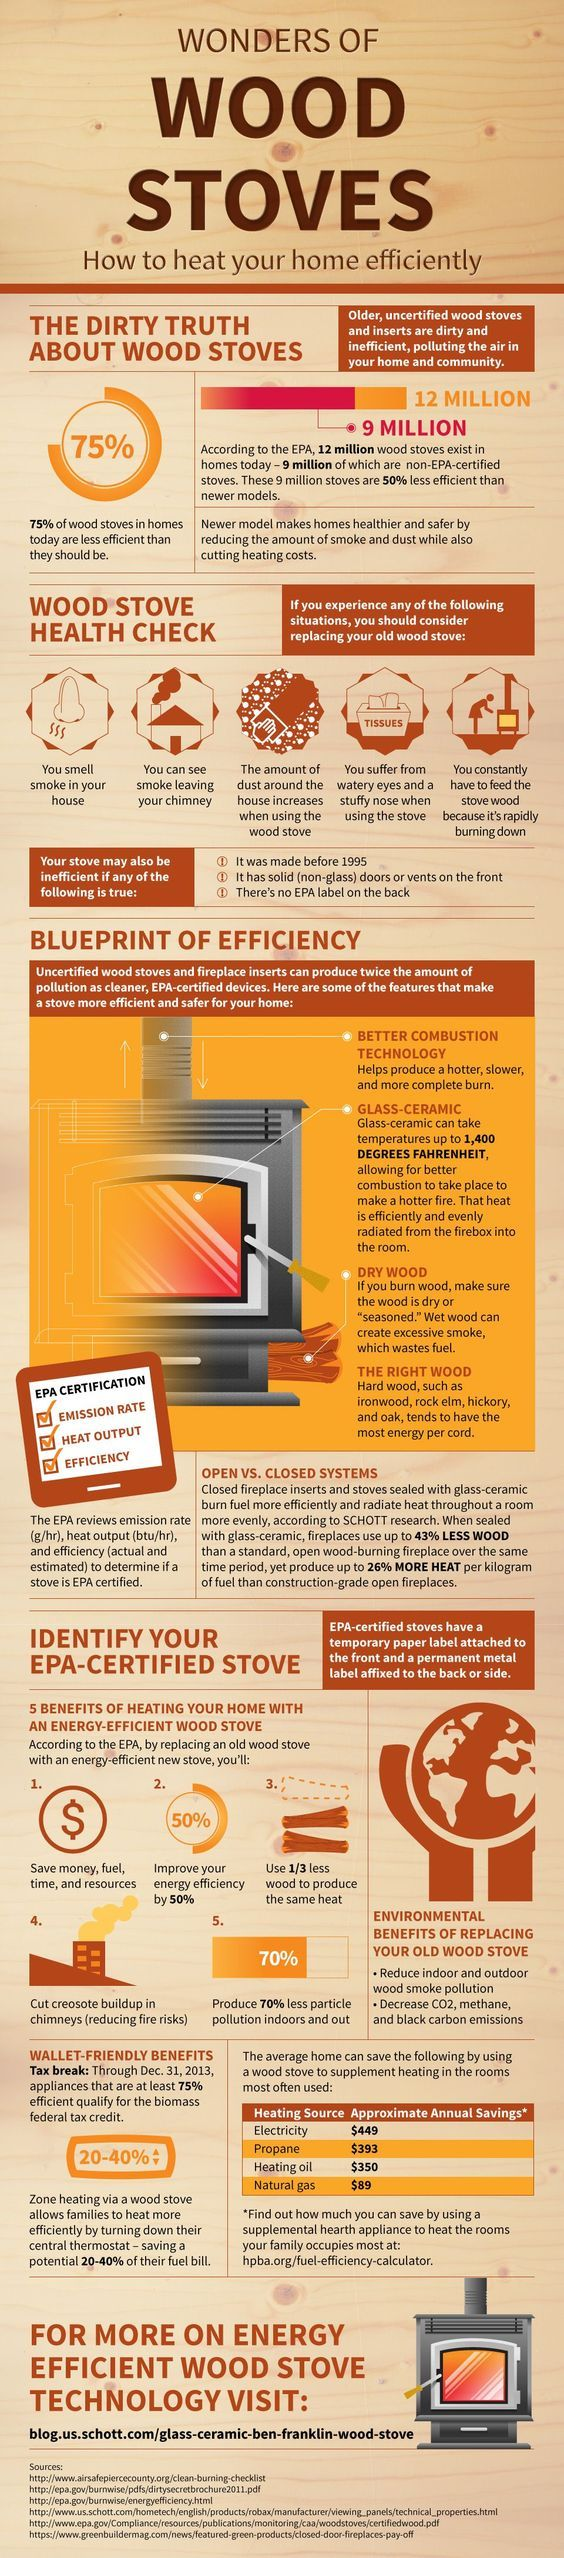 Wood Stoves - How to heat your home efficiently